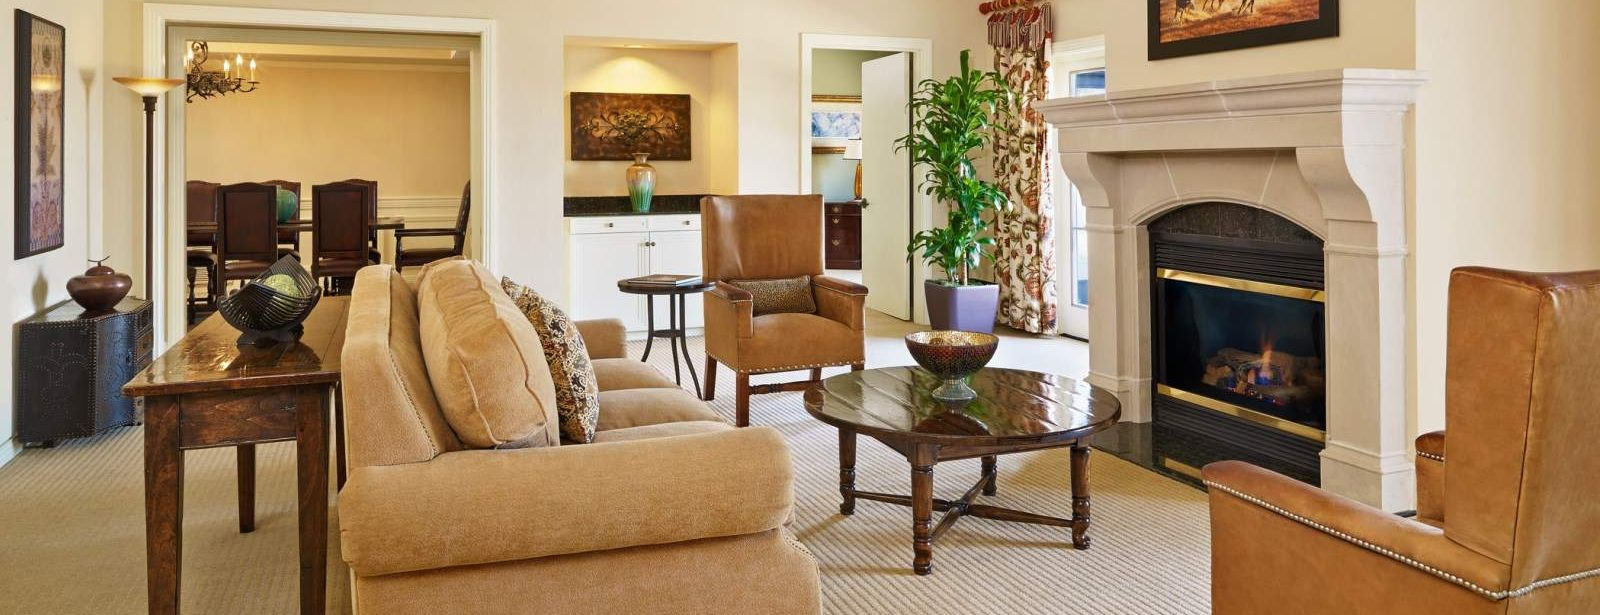 Frisco Accommodation - Premiere Suites - The Westin Stonebriar Hotel and Golf Club